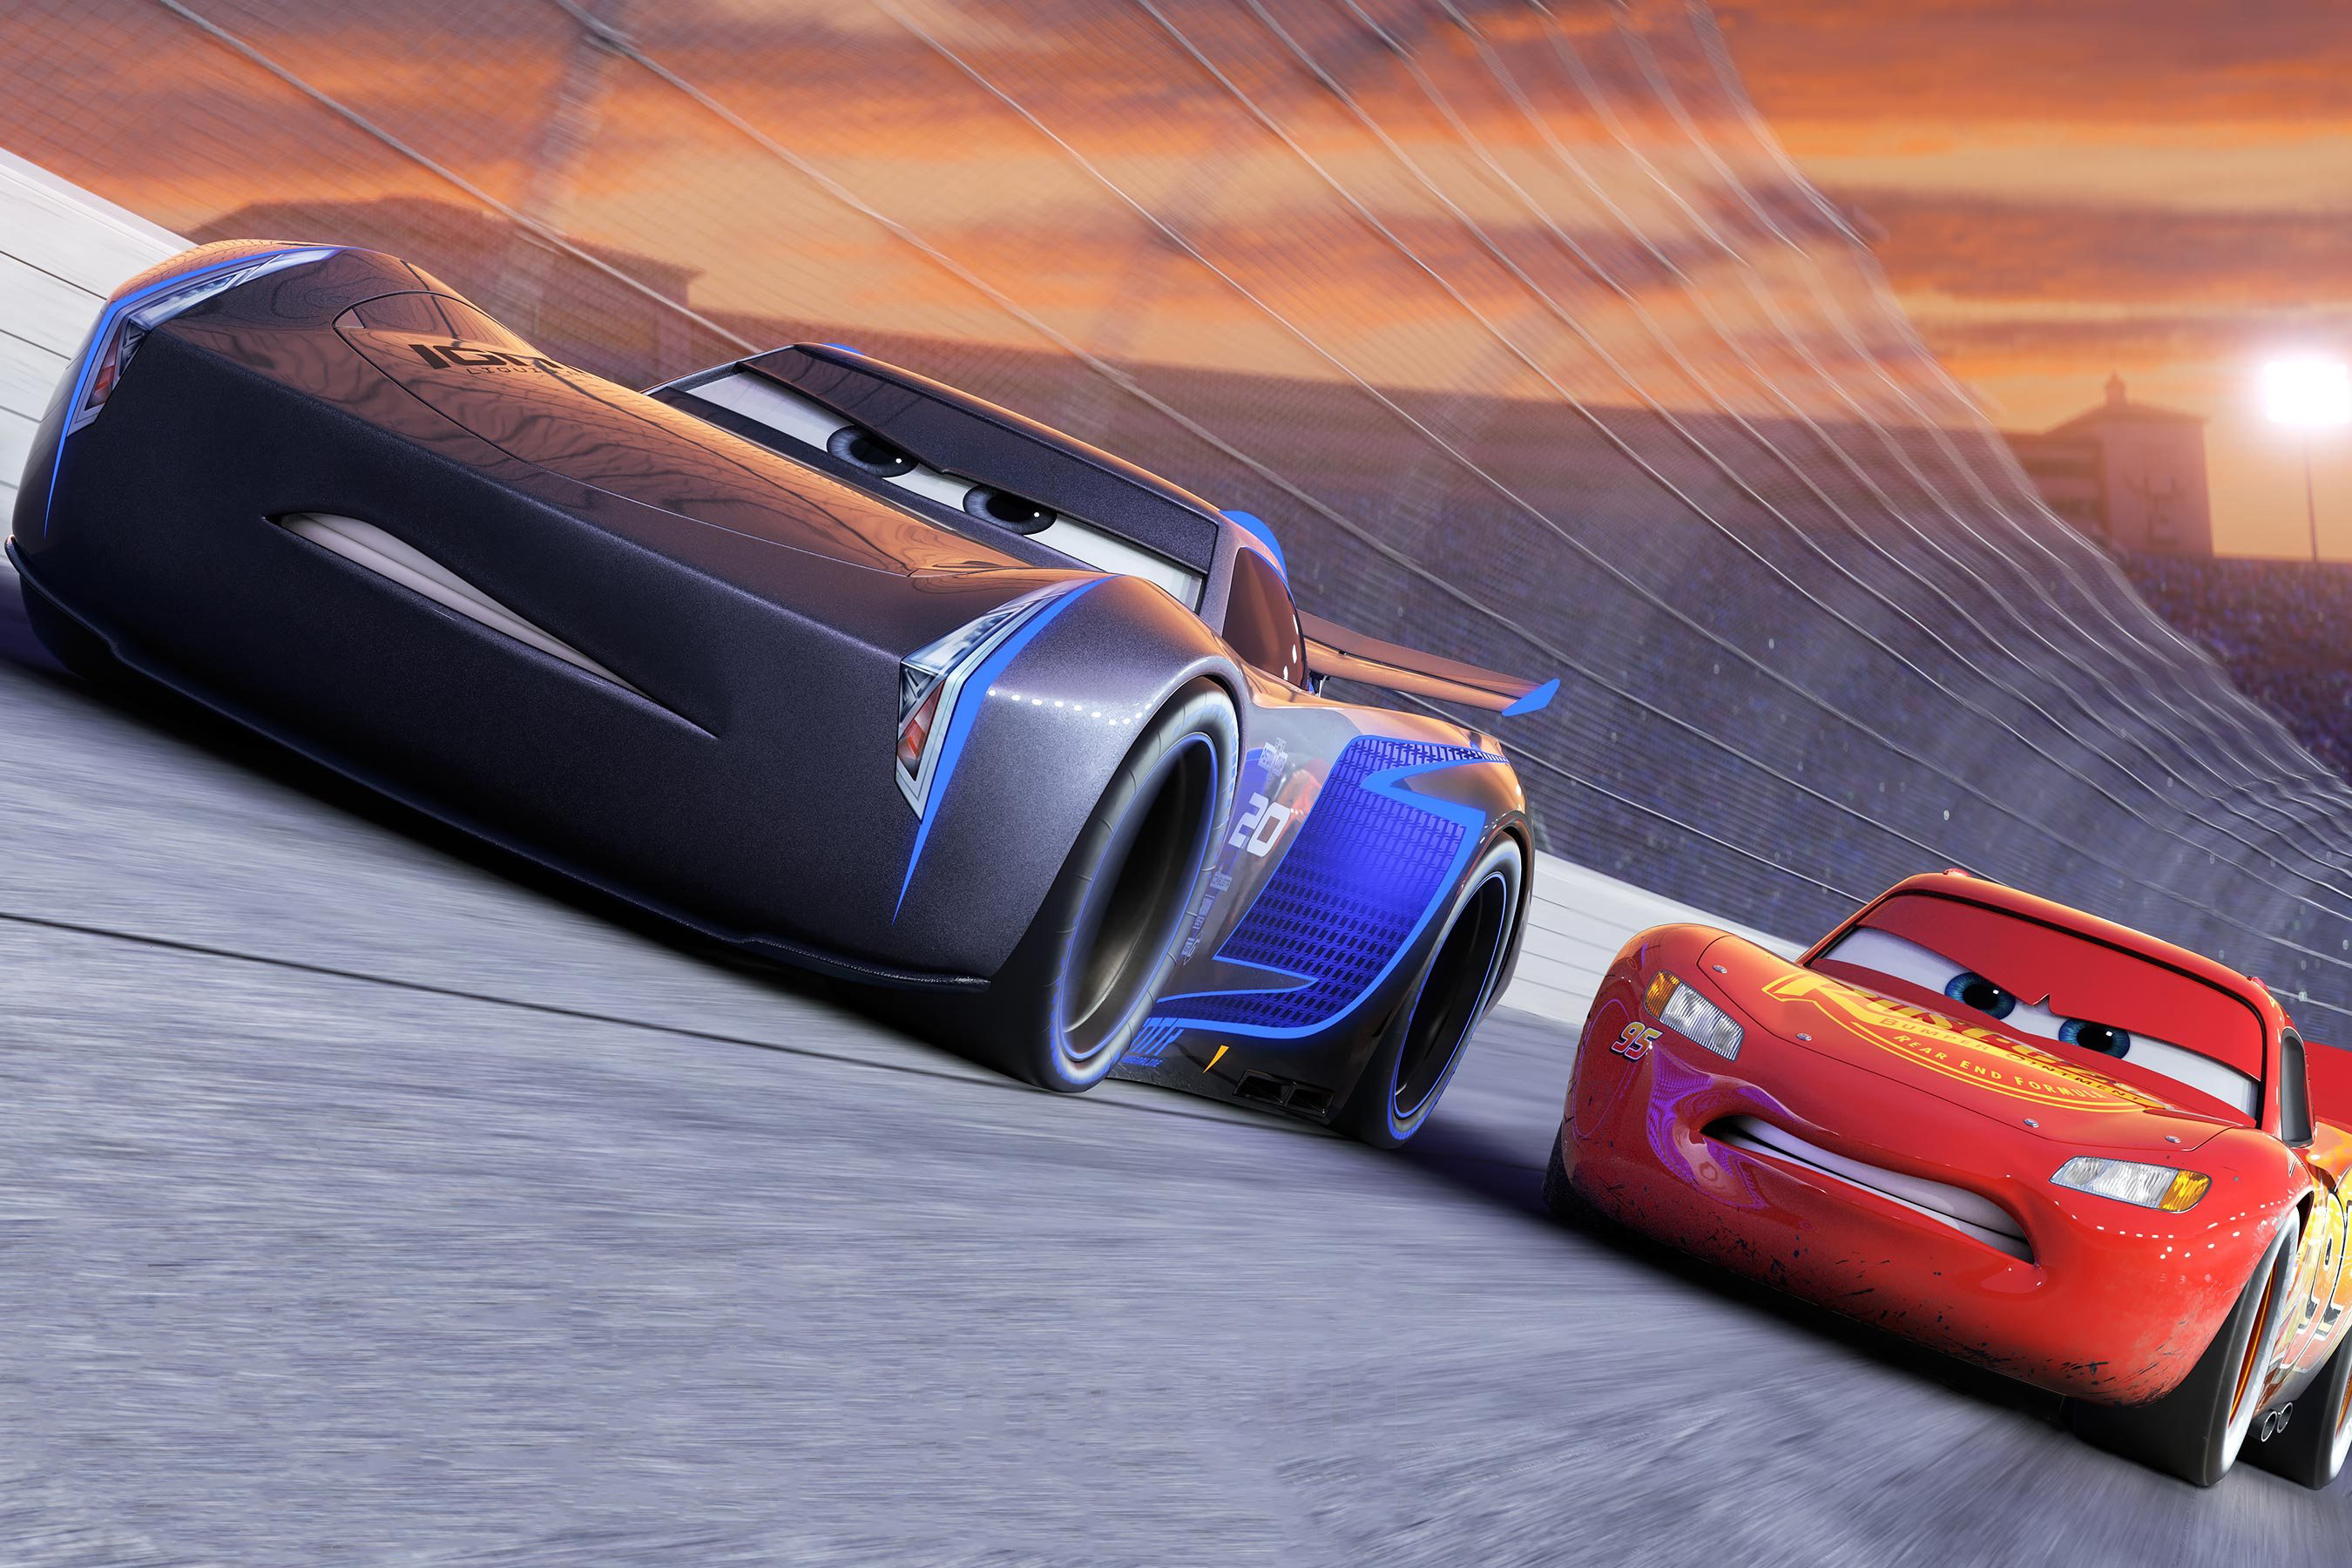 1920x1080 Cars 3 Laptop Full Hd 1080p Hd 4k Wallpapers Images